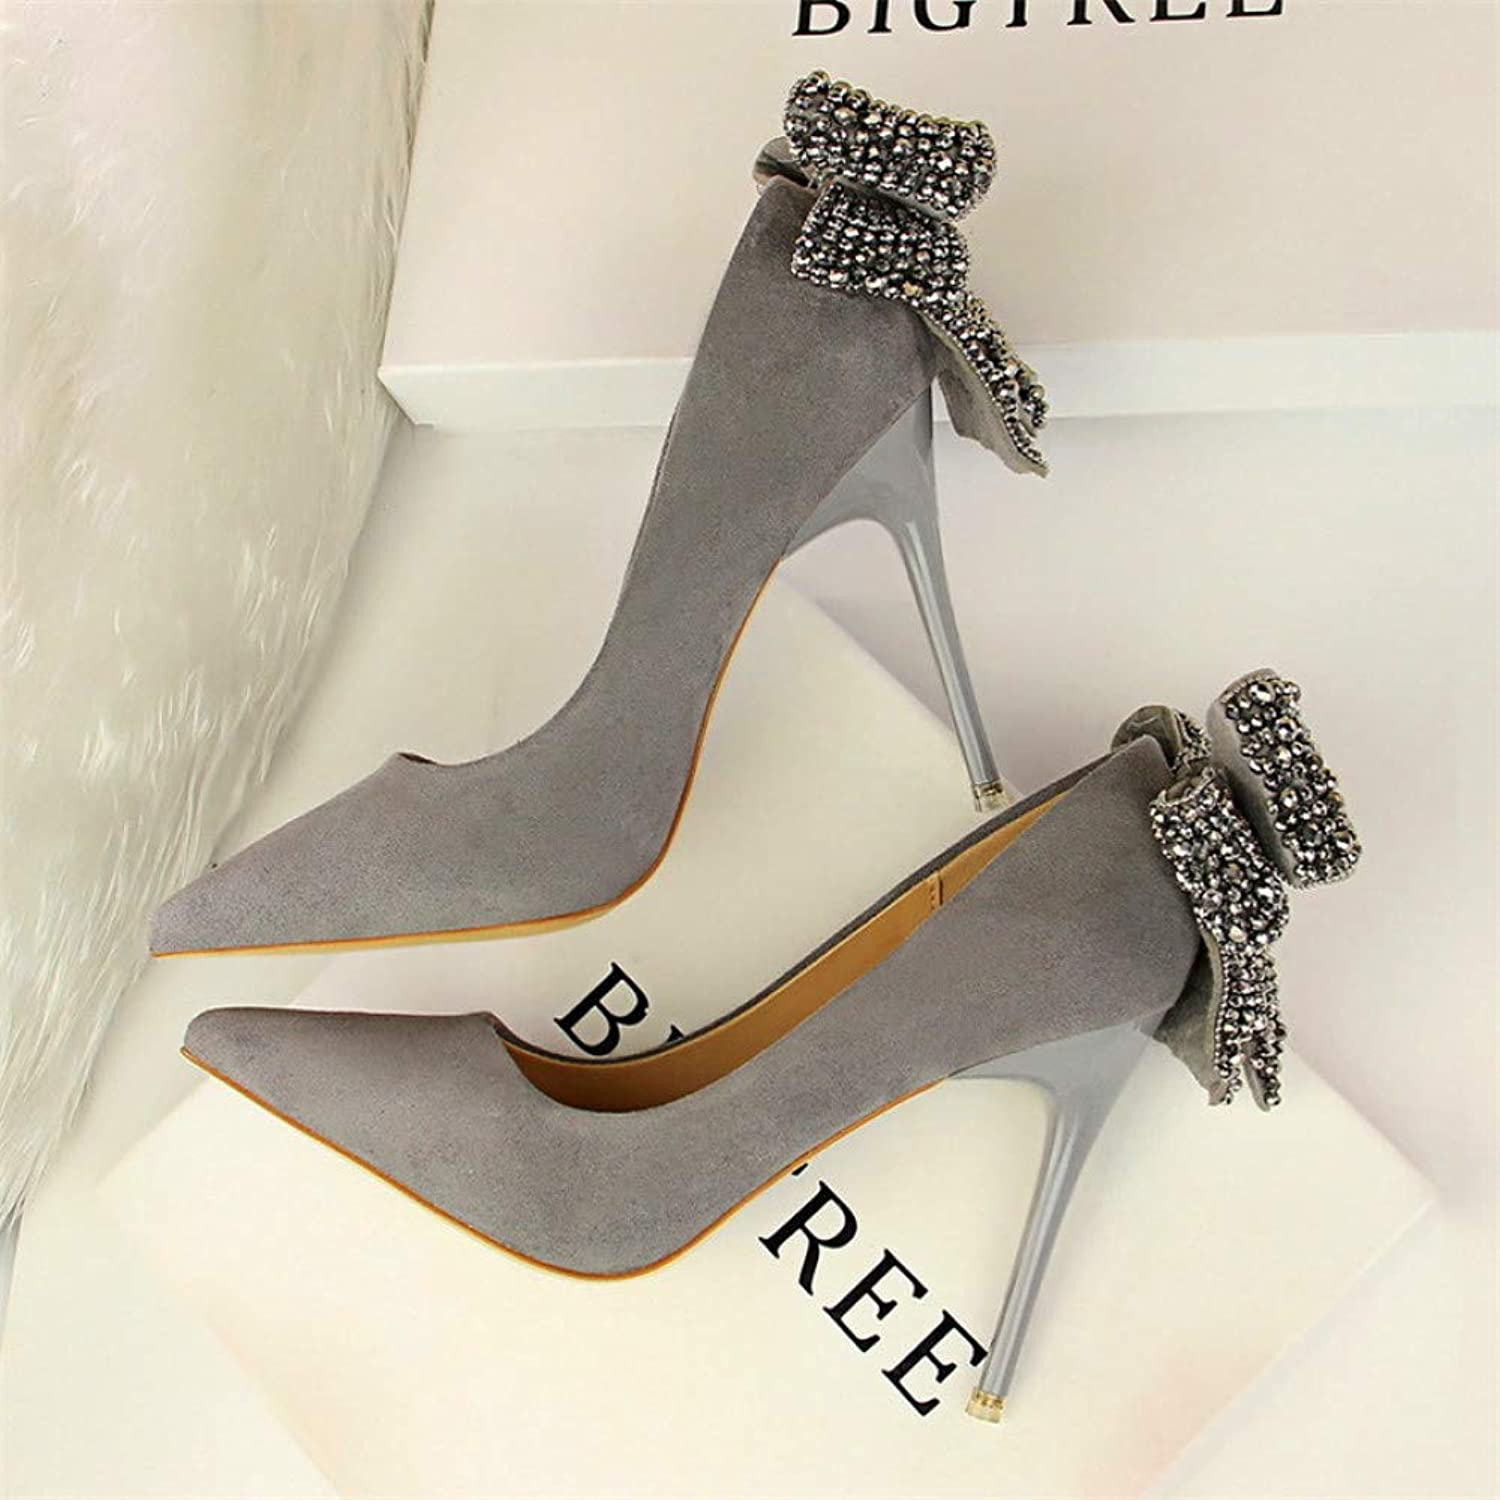 LIHUIYUN shoes Women's Elegant Crystal Butterfly-Knot Shallow Wedding shoes Korean Fashion Women Pumps Solid Flock Pointed Toe High Heels shoes